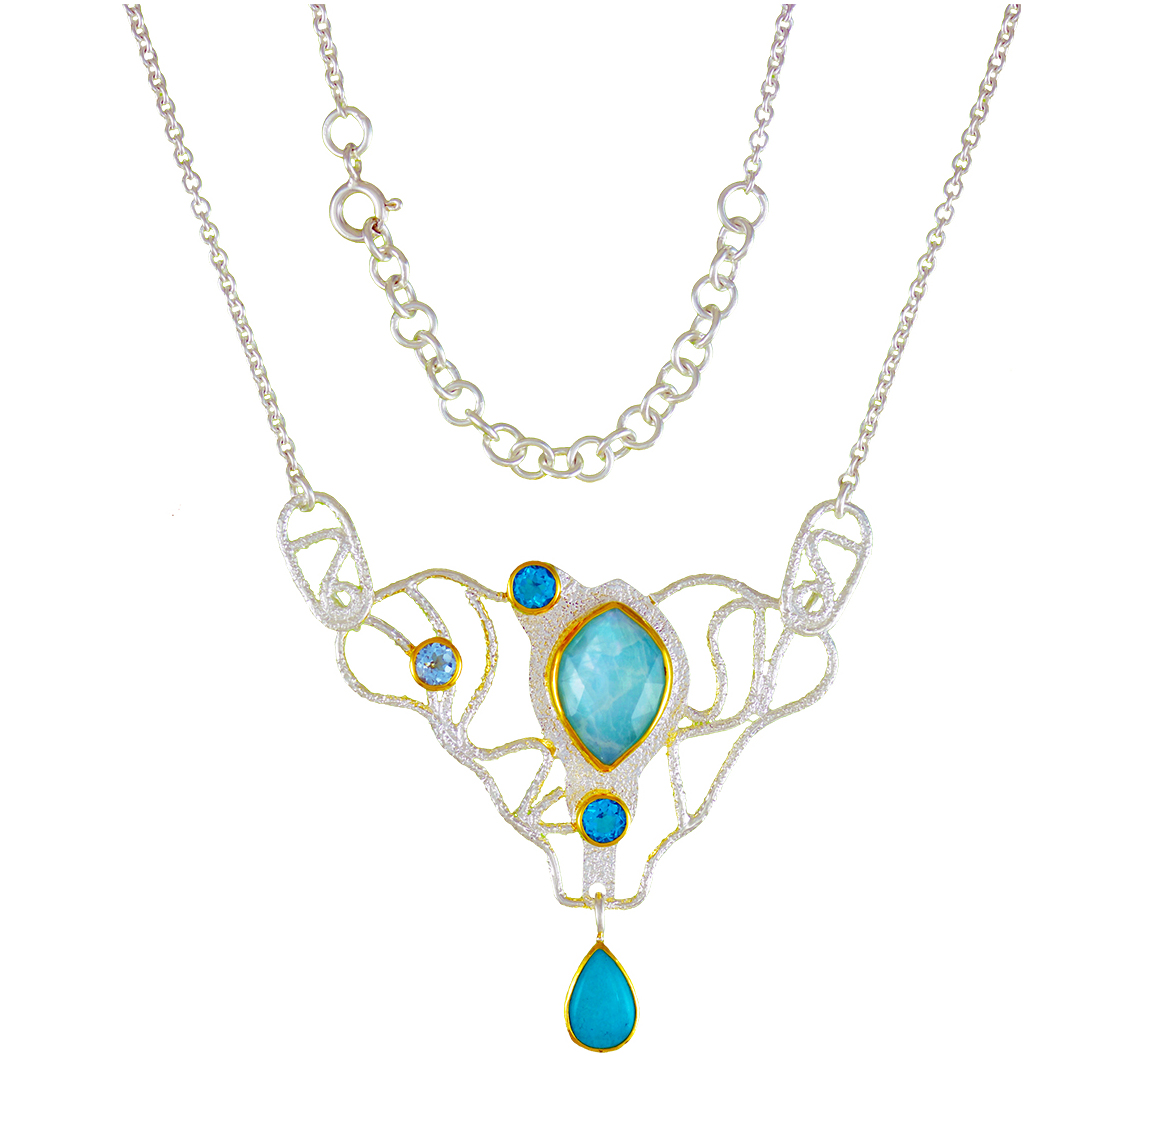 "670-4  22K Yellow Gold Sterling Silver Sterling Necklace With Stones With 2= Pear Amazonite And 3= Round Blue Topaz, 20""  $330.00"